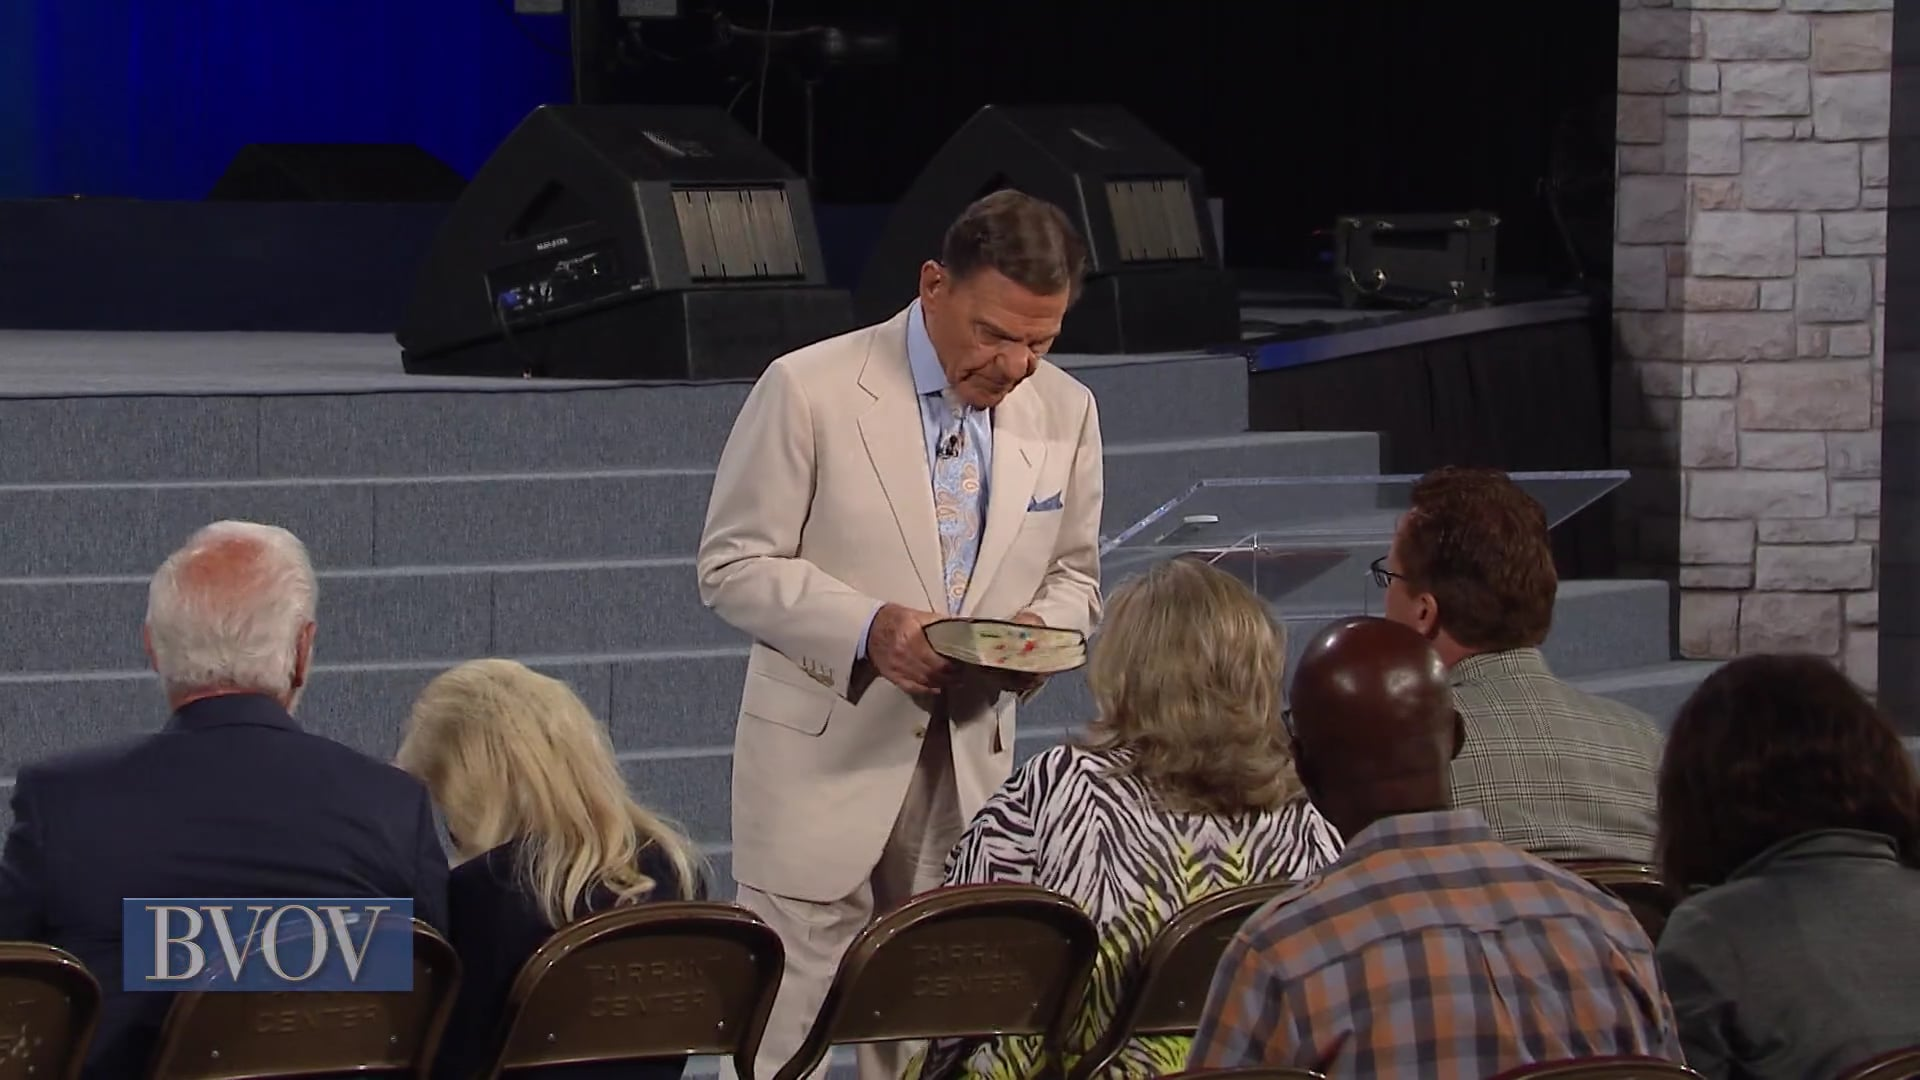 Why do so few people receive healing? Join Kenneth Copeland on Believer's Voice of Victory as he answers the question by digging into God's chesed covenant of healing. Learn how God's covenant with you is an expression of His mercy, kindness and goodness. You can lean on your covenant for your healing with complete confidence!